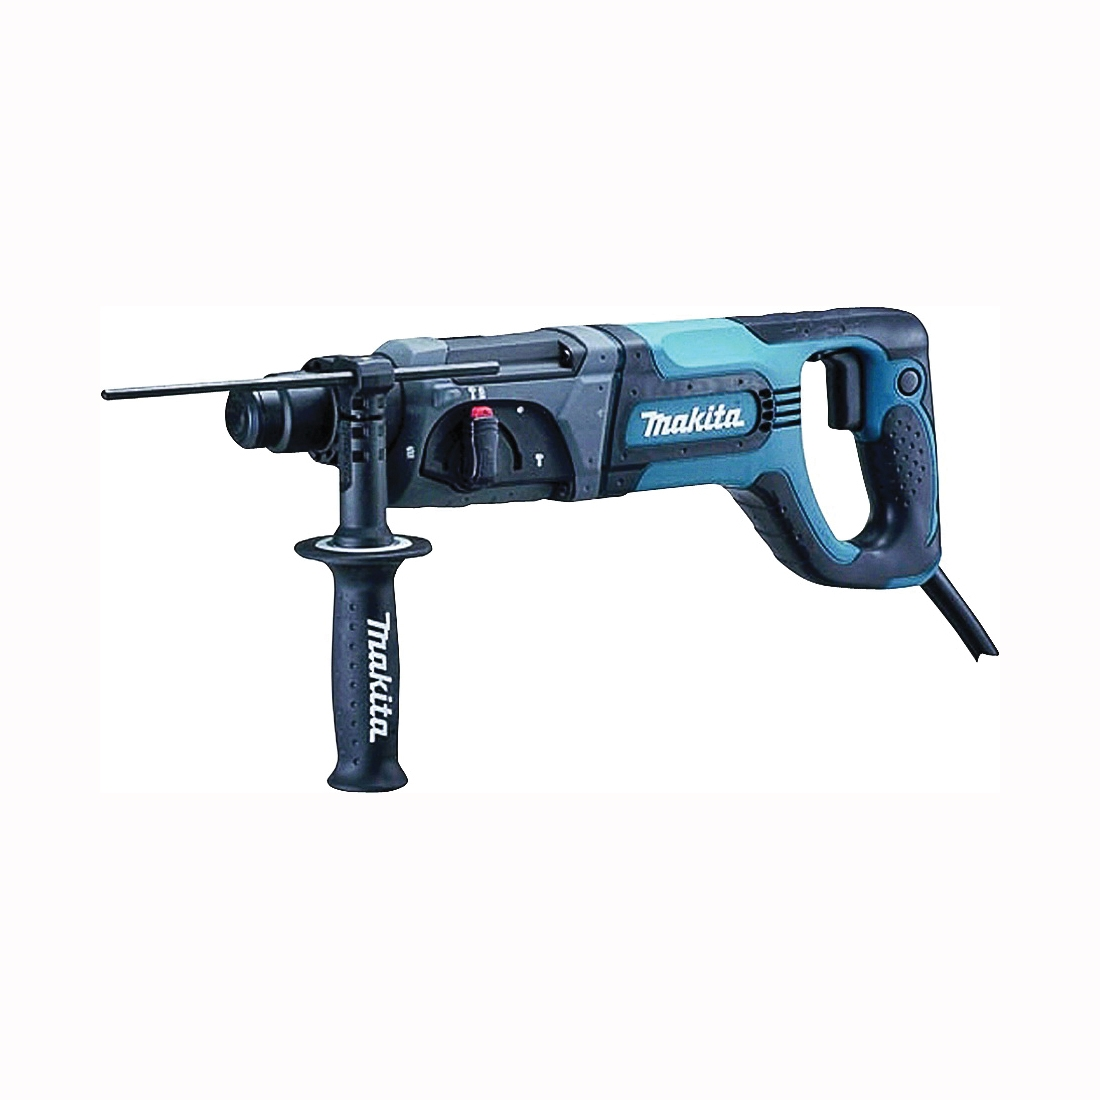 Picture of Makita HR2475 Rotary Hammer, 120 V, 780 W, 24 mm Concrete, 13 mm Steel, 32 mm Wood Drilling, 1 in Chuck